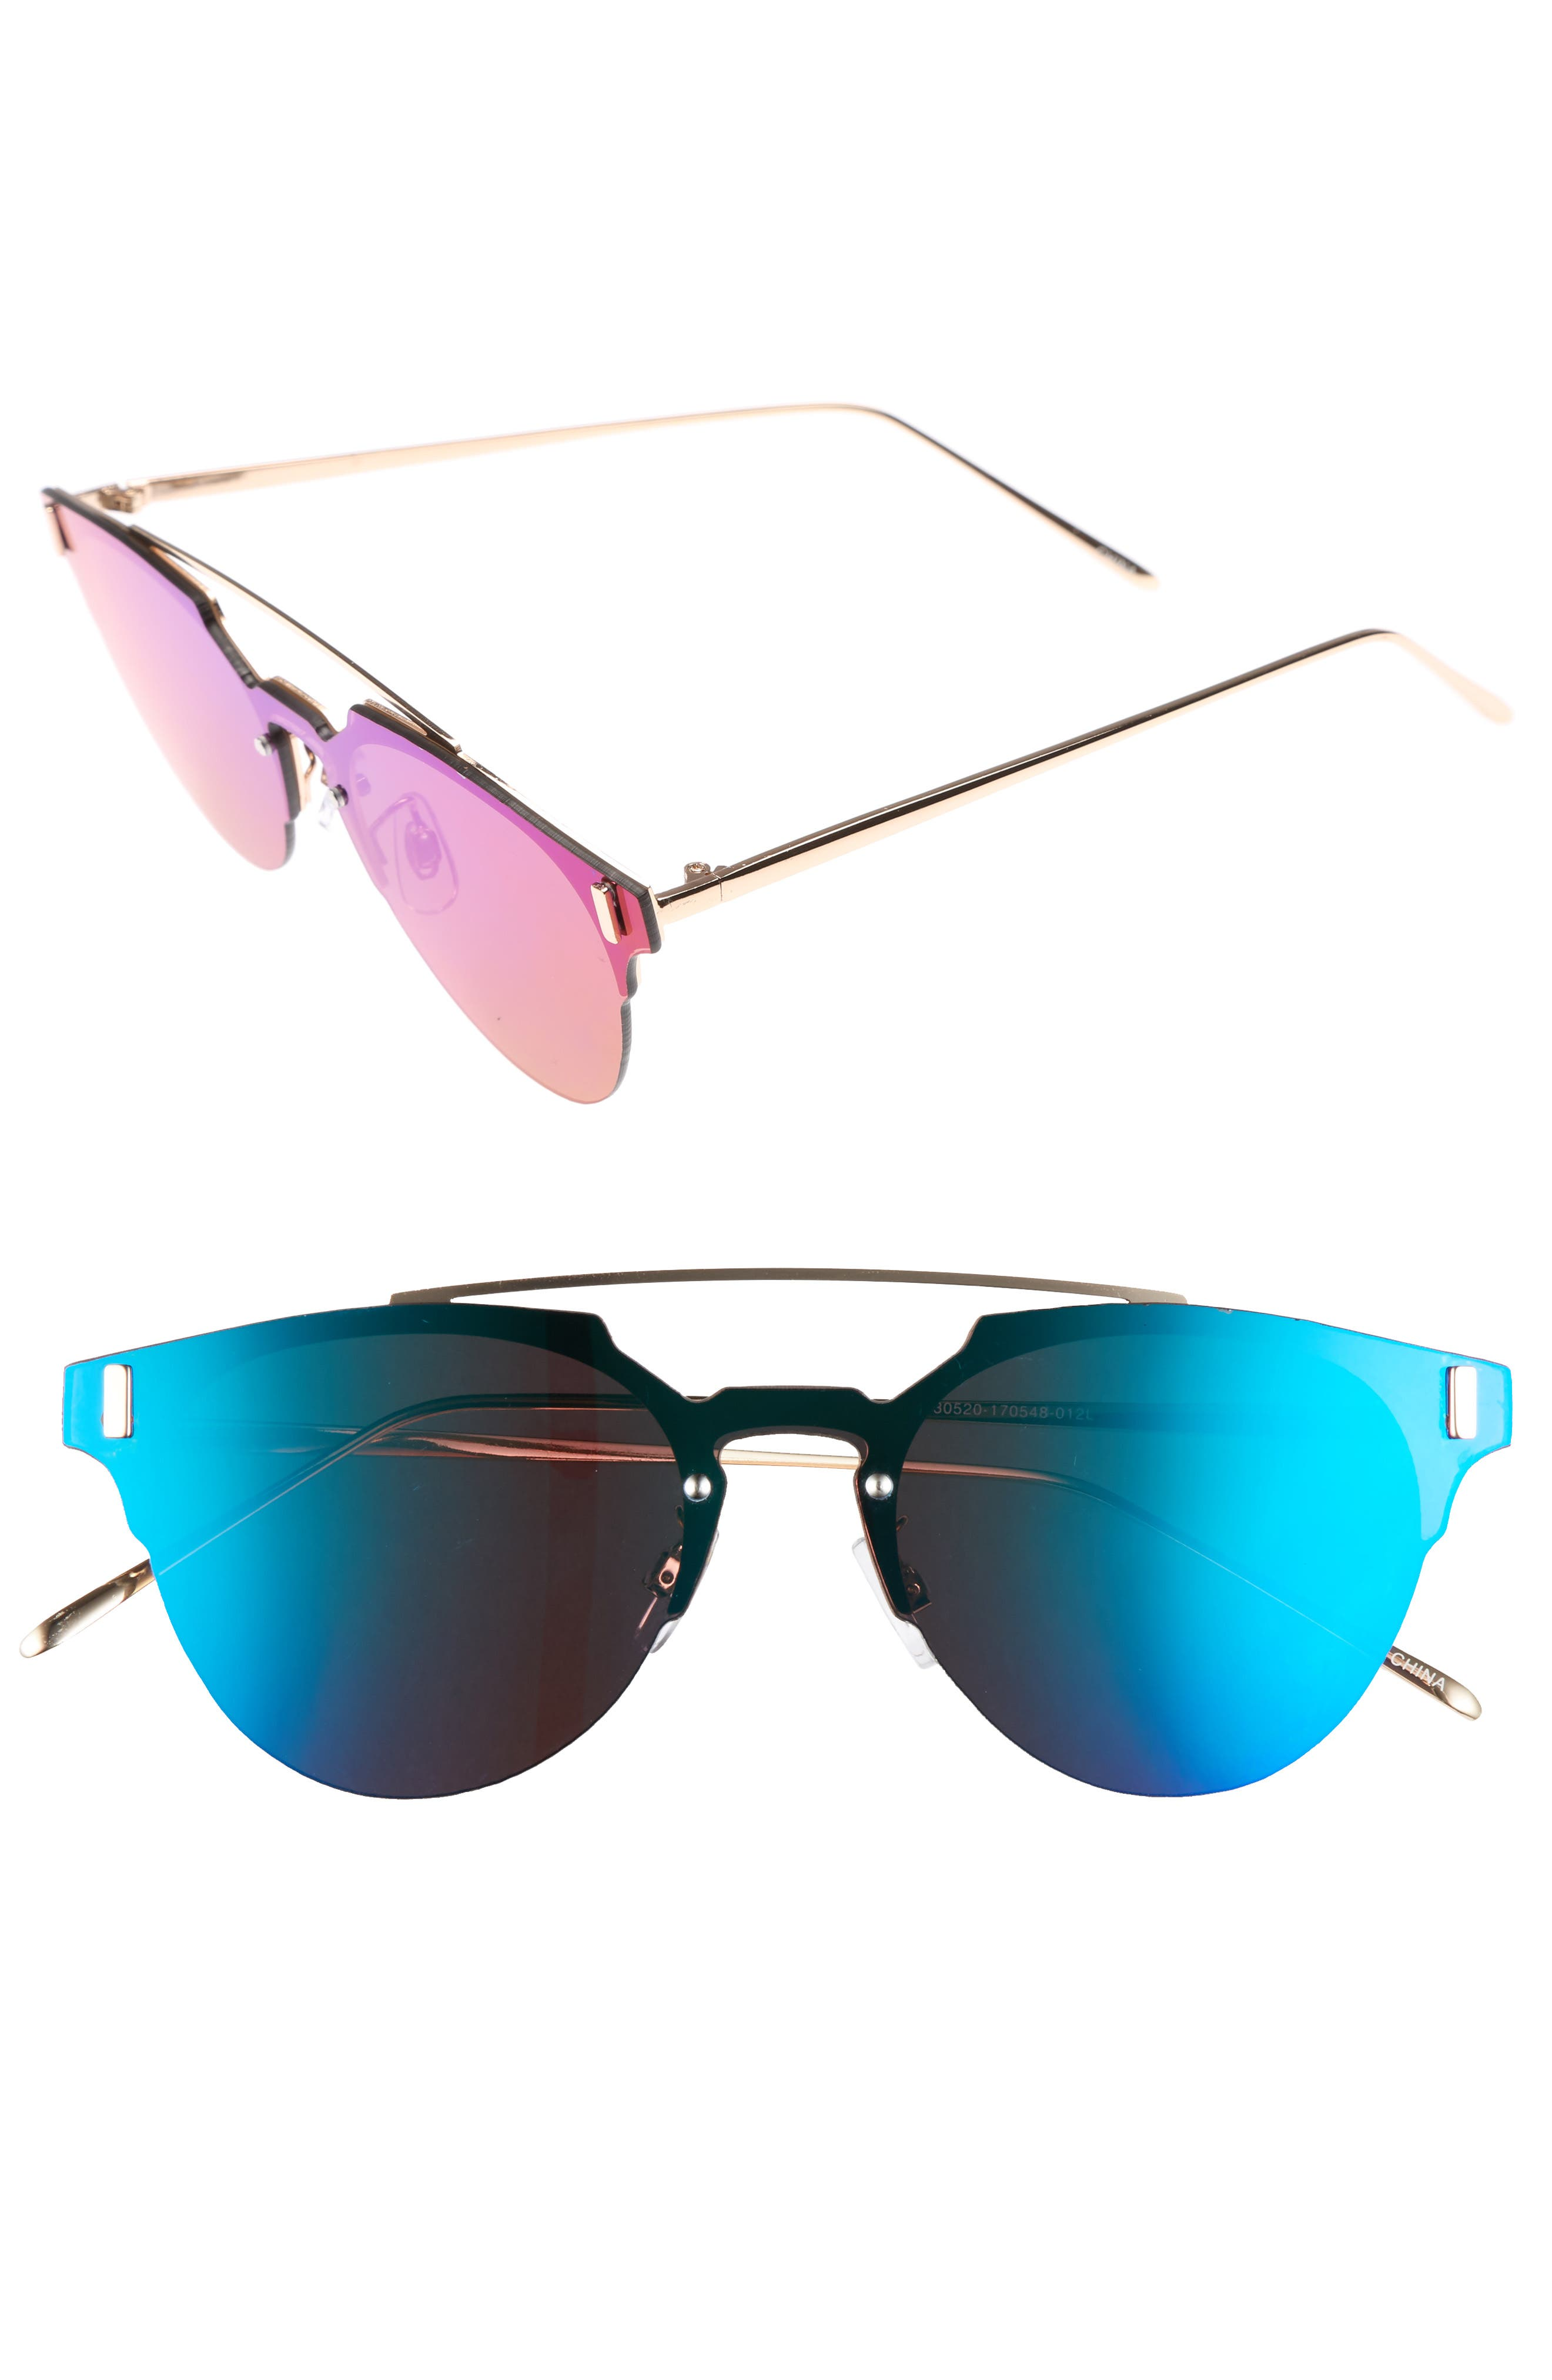 50mm Mirrored Round Sunglasses,                         Main,                         color, Blue